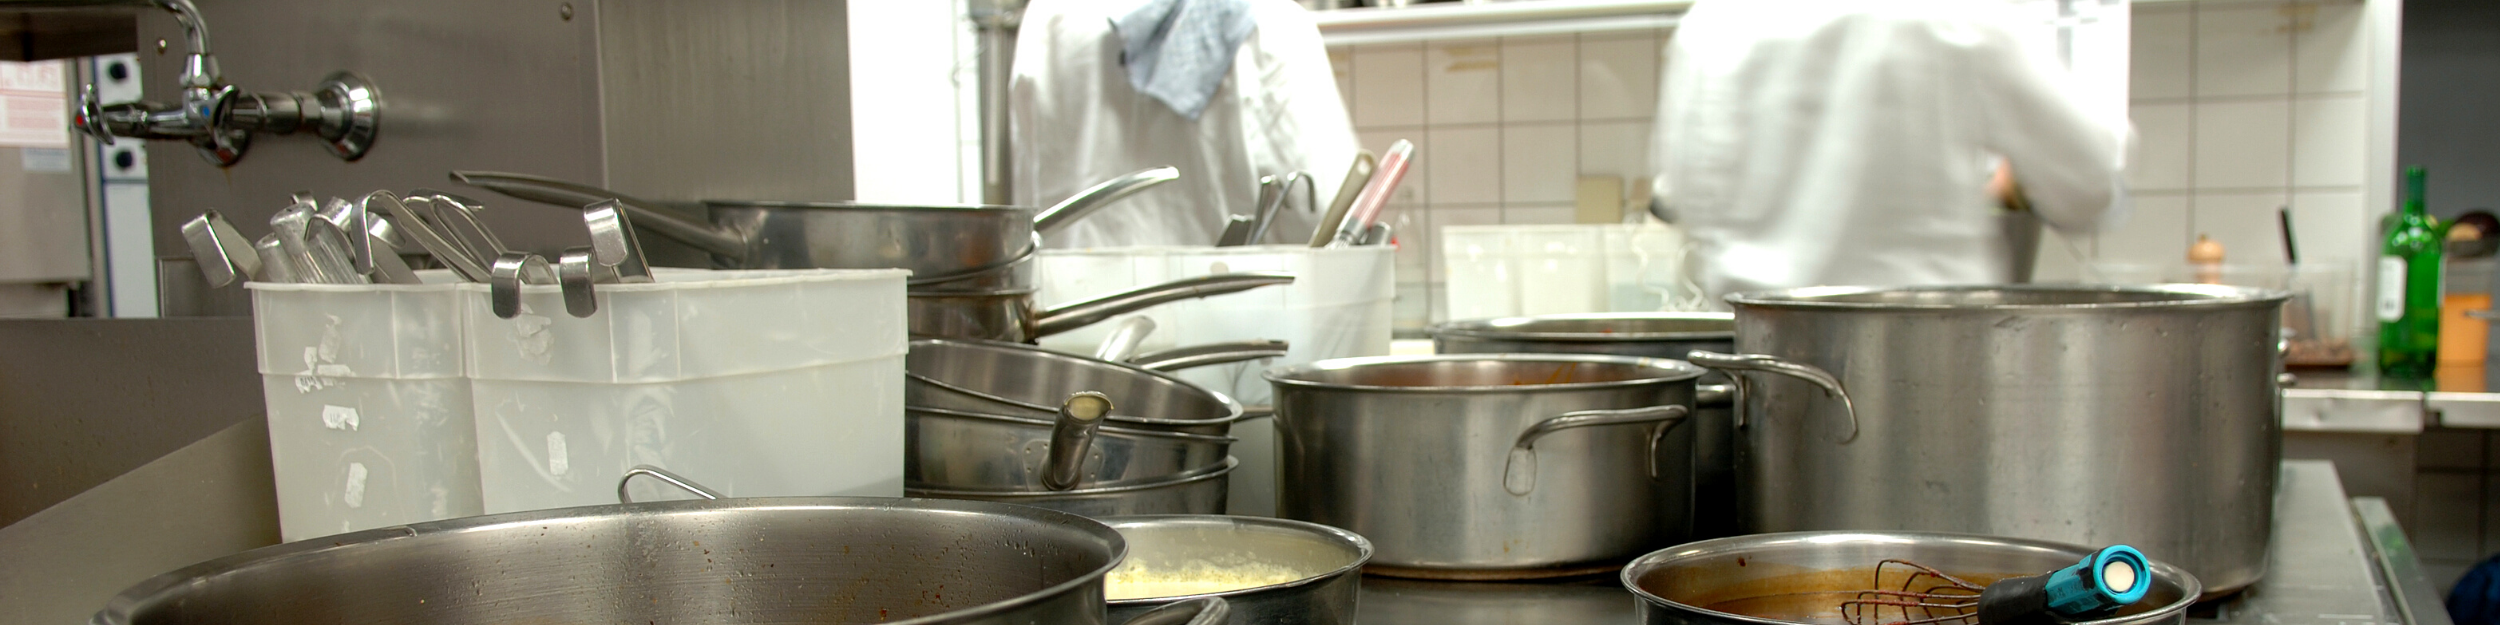 Restaurant kitchen with pots and pans in use